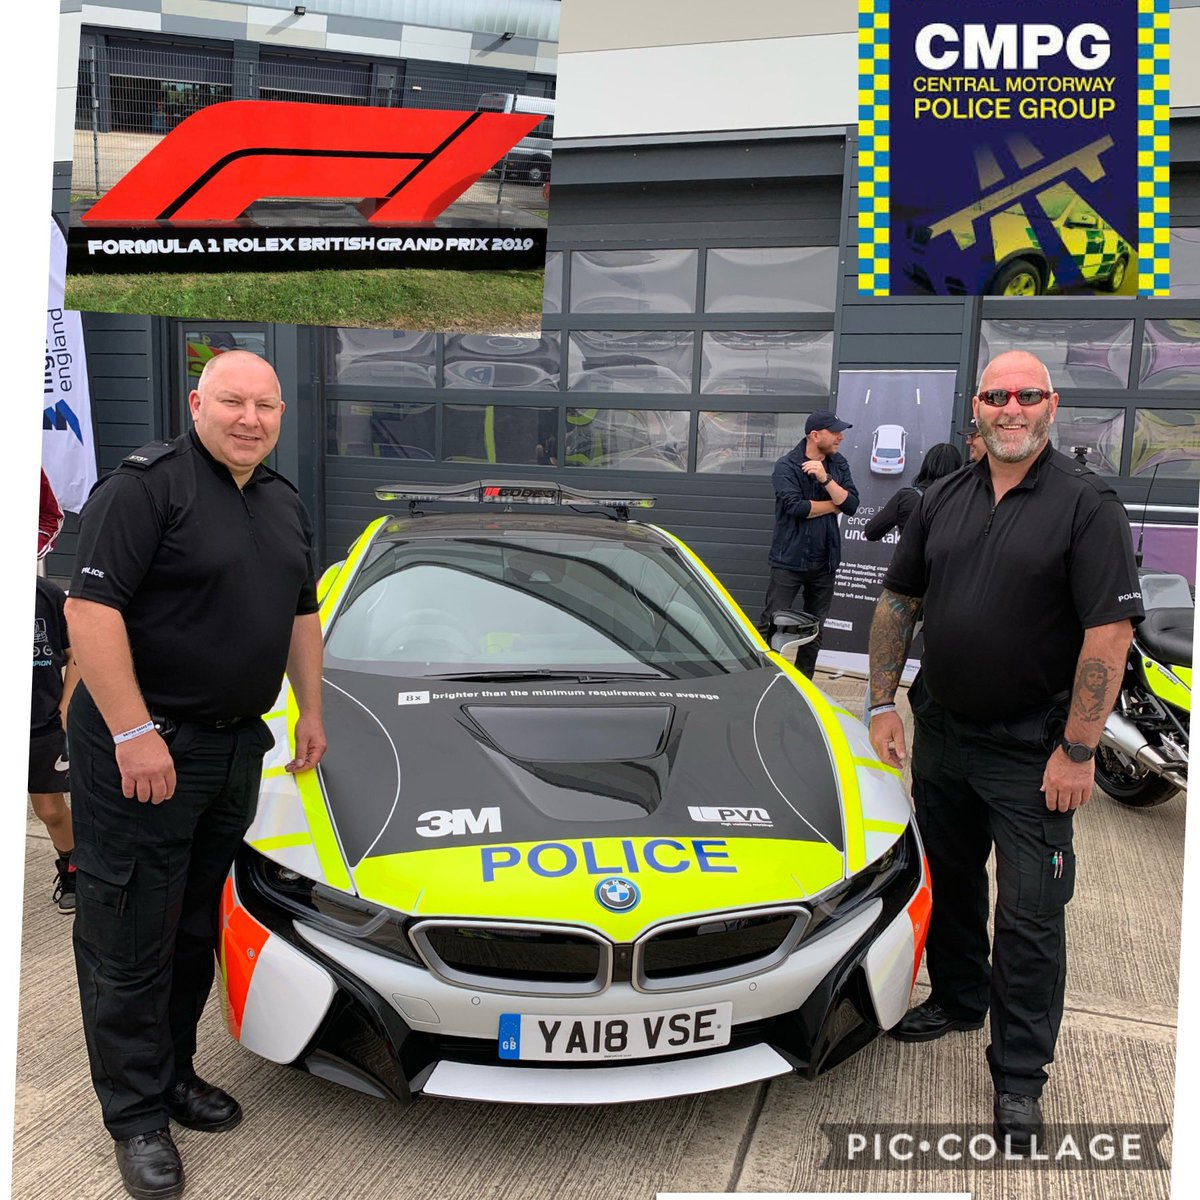 CMPG are @SilverstoneUK today. Talking road safety at the @F1. We are in the family zone, come & say hello. @HighwaysEngland @MarieBiddulph1 @999flymo @MedicAlertUK @BMW